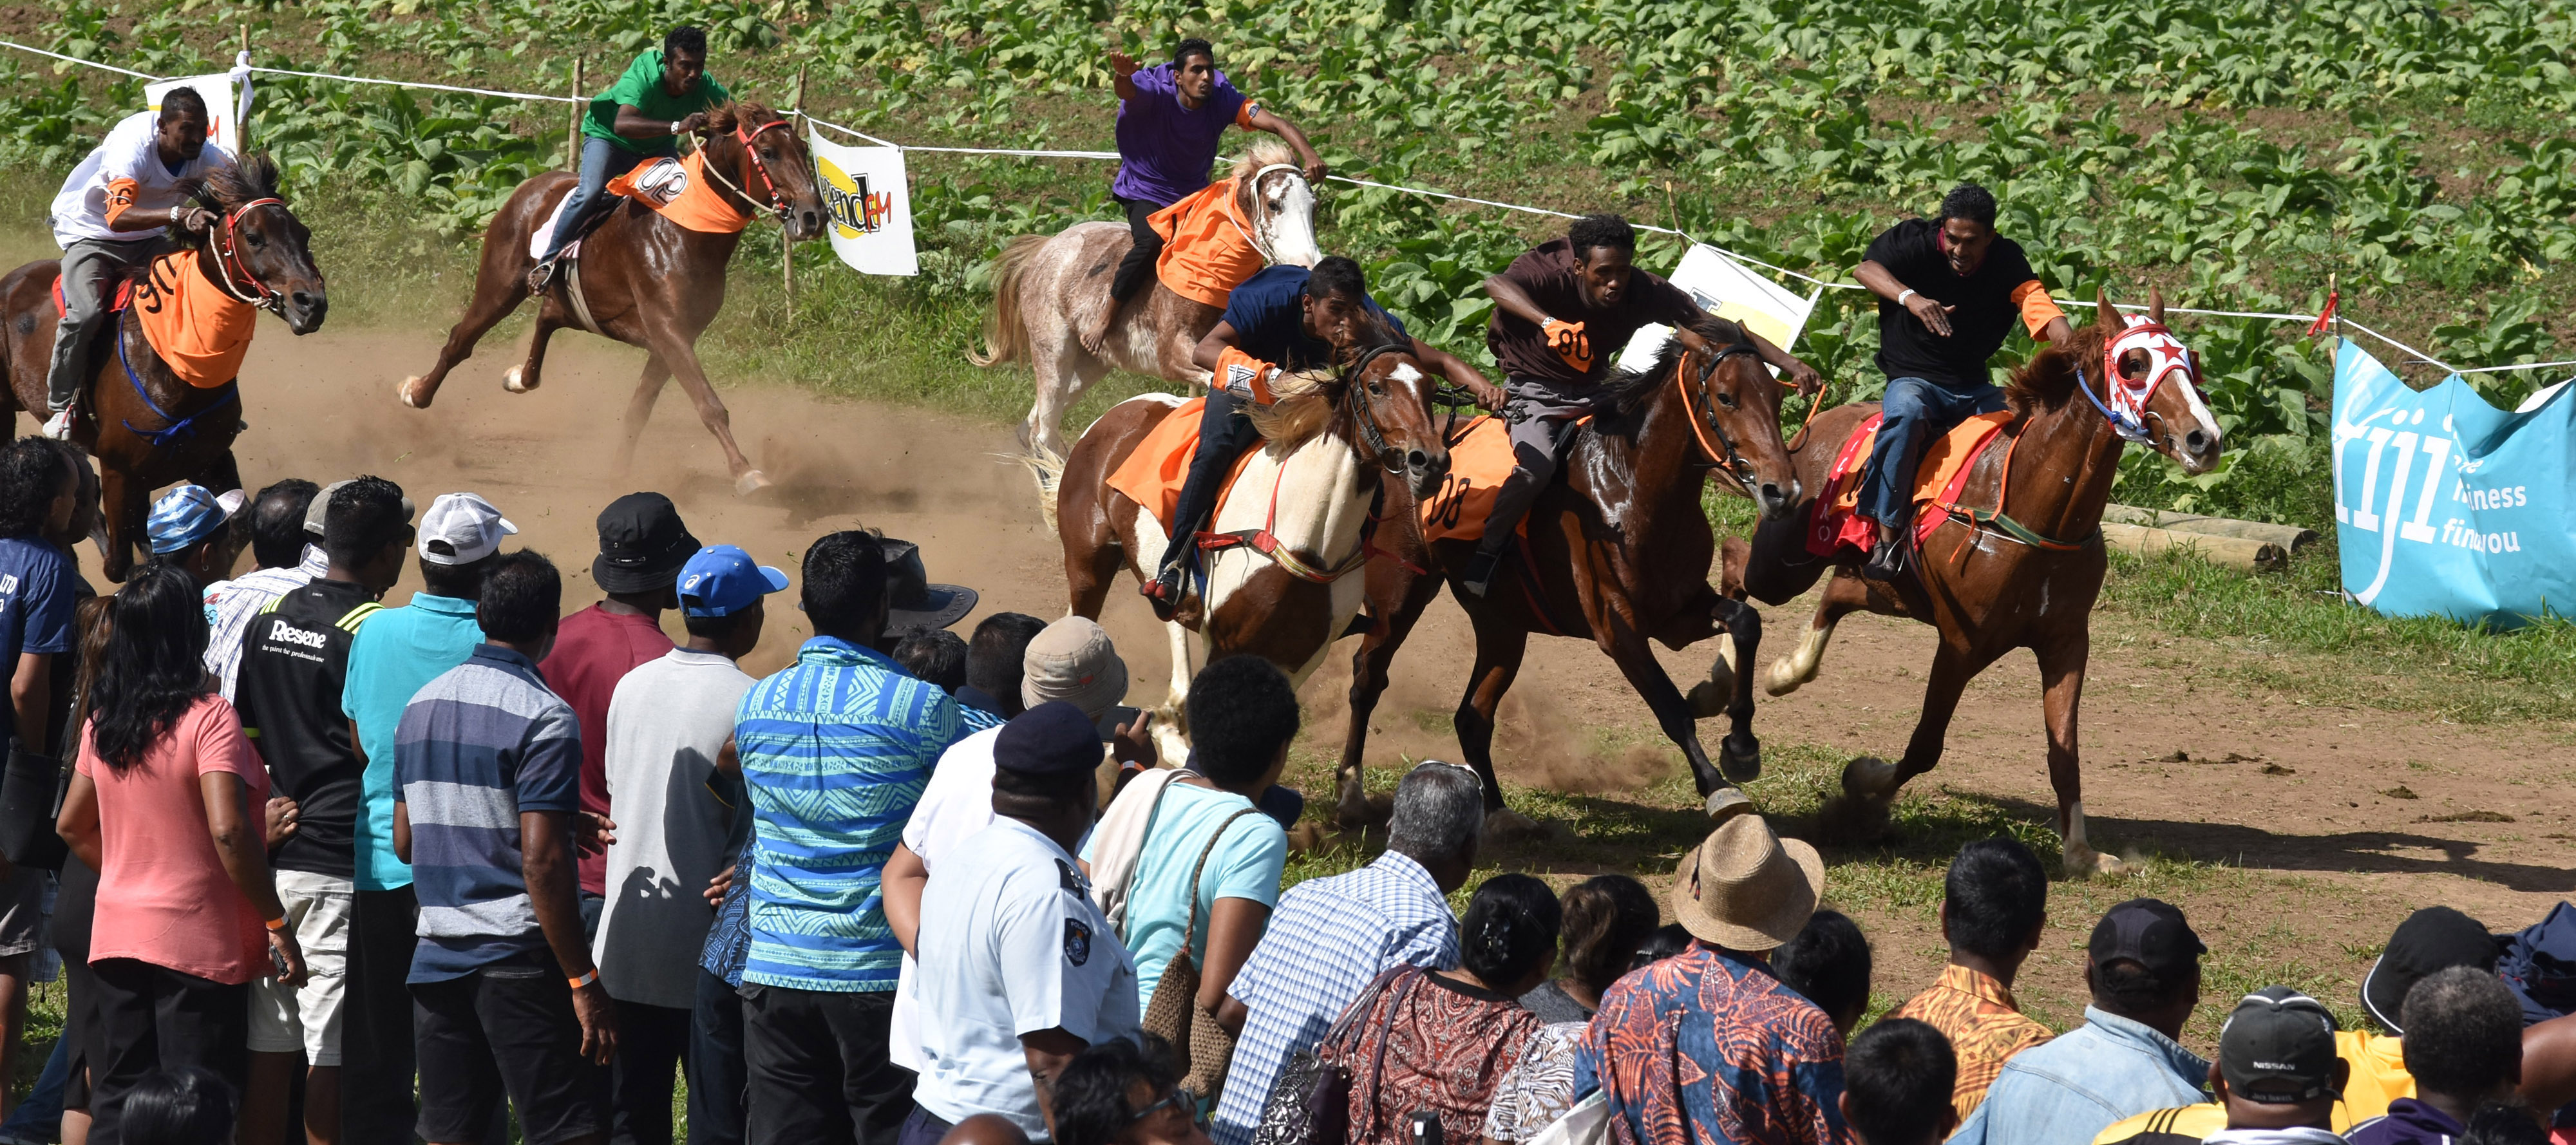 Volcano wins the race at the Sabeto Races at Aviva Farms in Sabeto, Nadi on June 30, 2018.  Photo: Waisea Nsokia